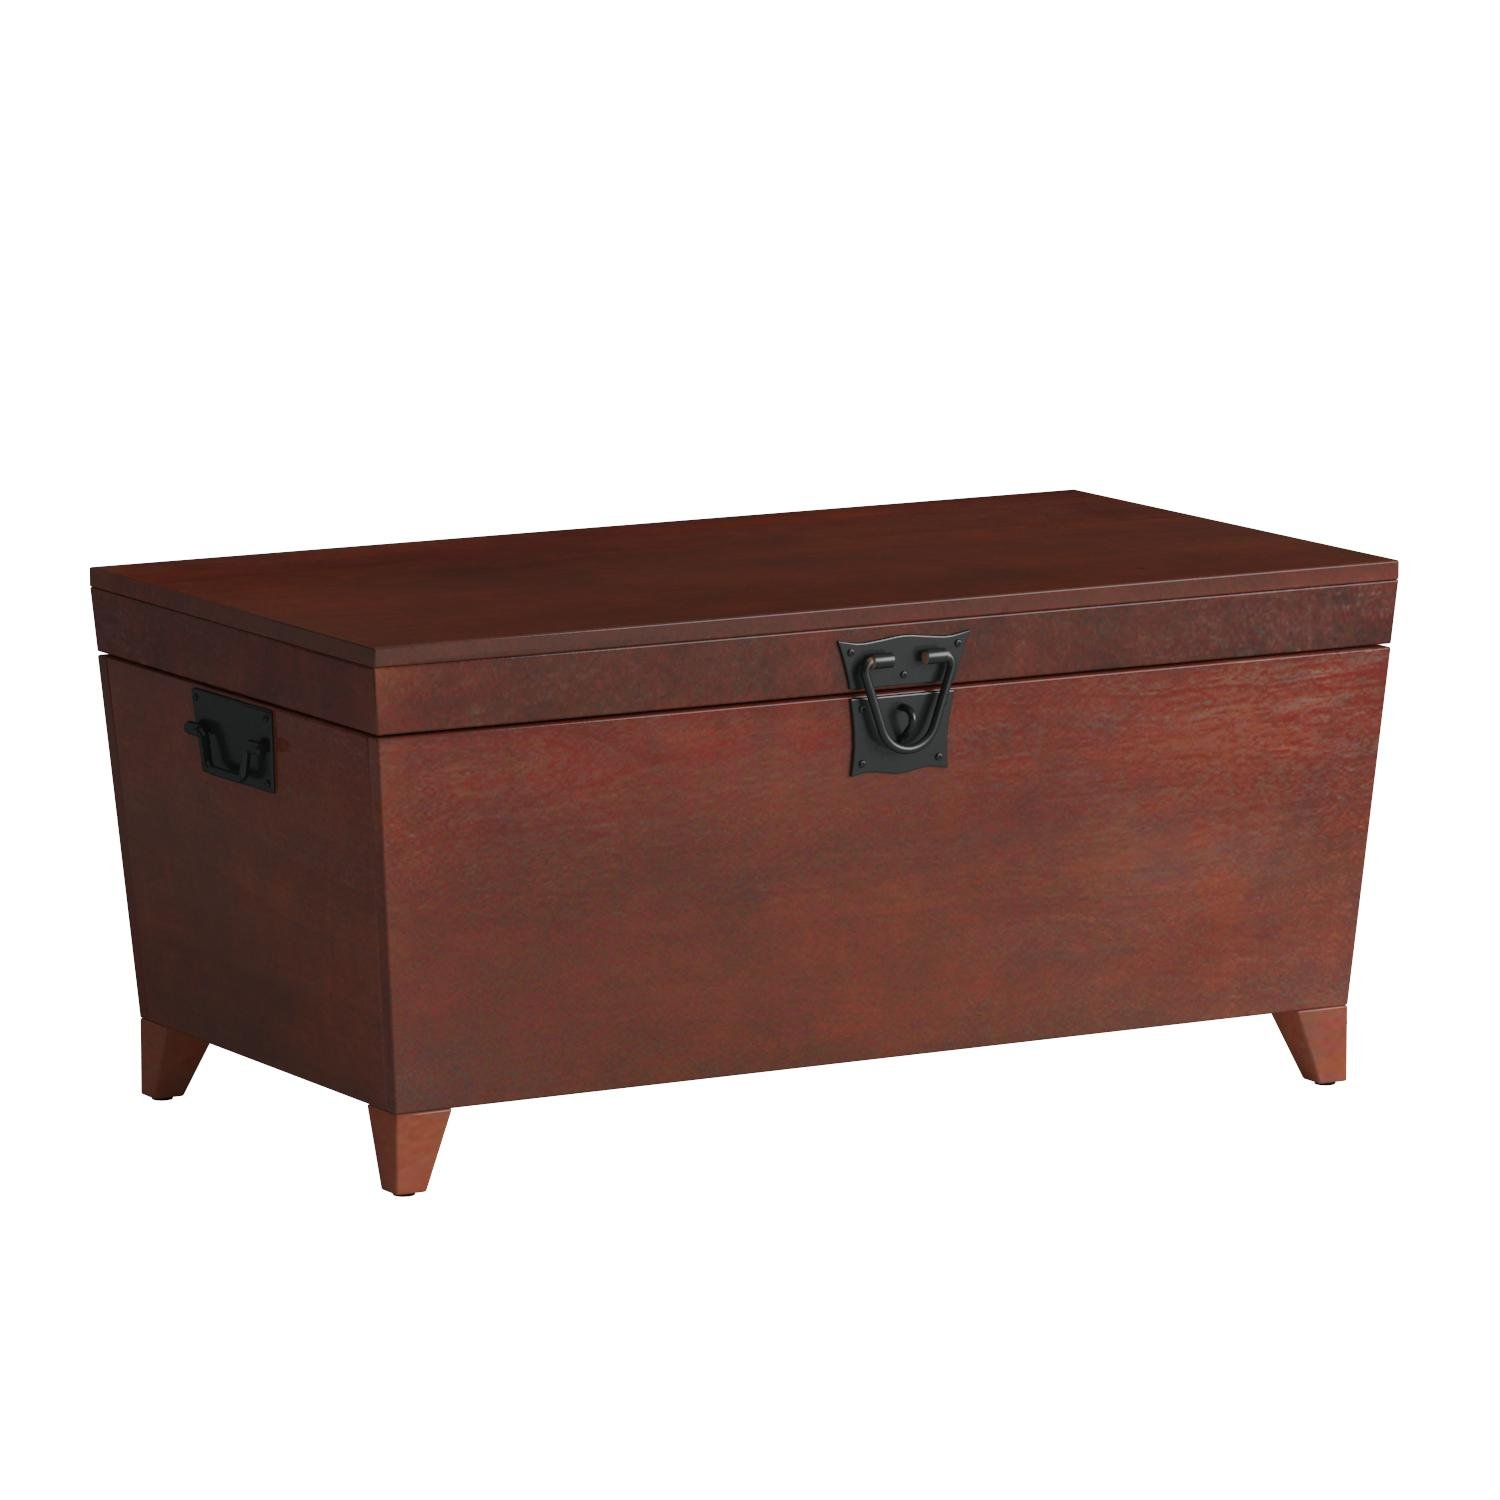 Southern Enterprises Pyramid Storage Trunk Cocktail Table, Espresso Finish by Southern Enterprises